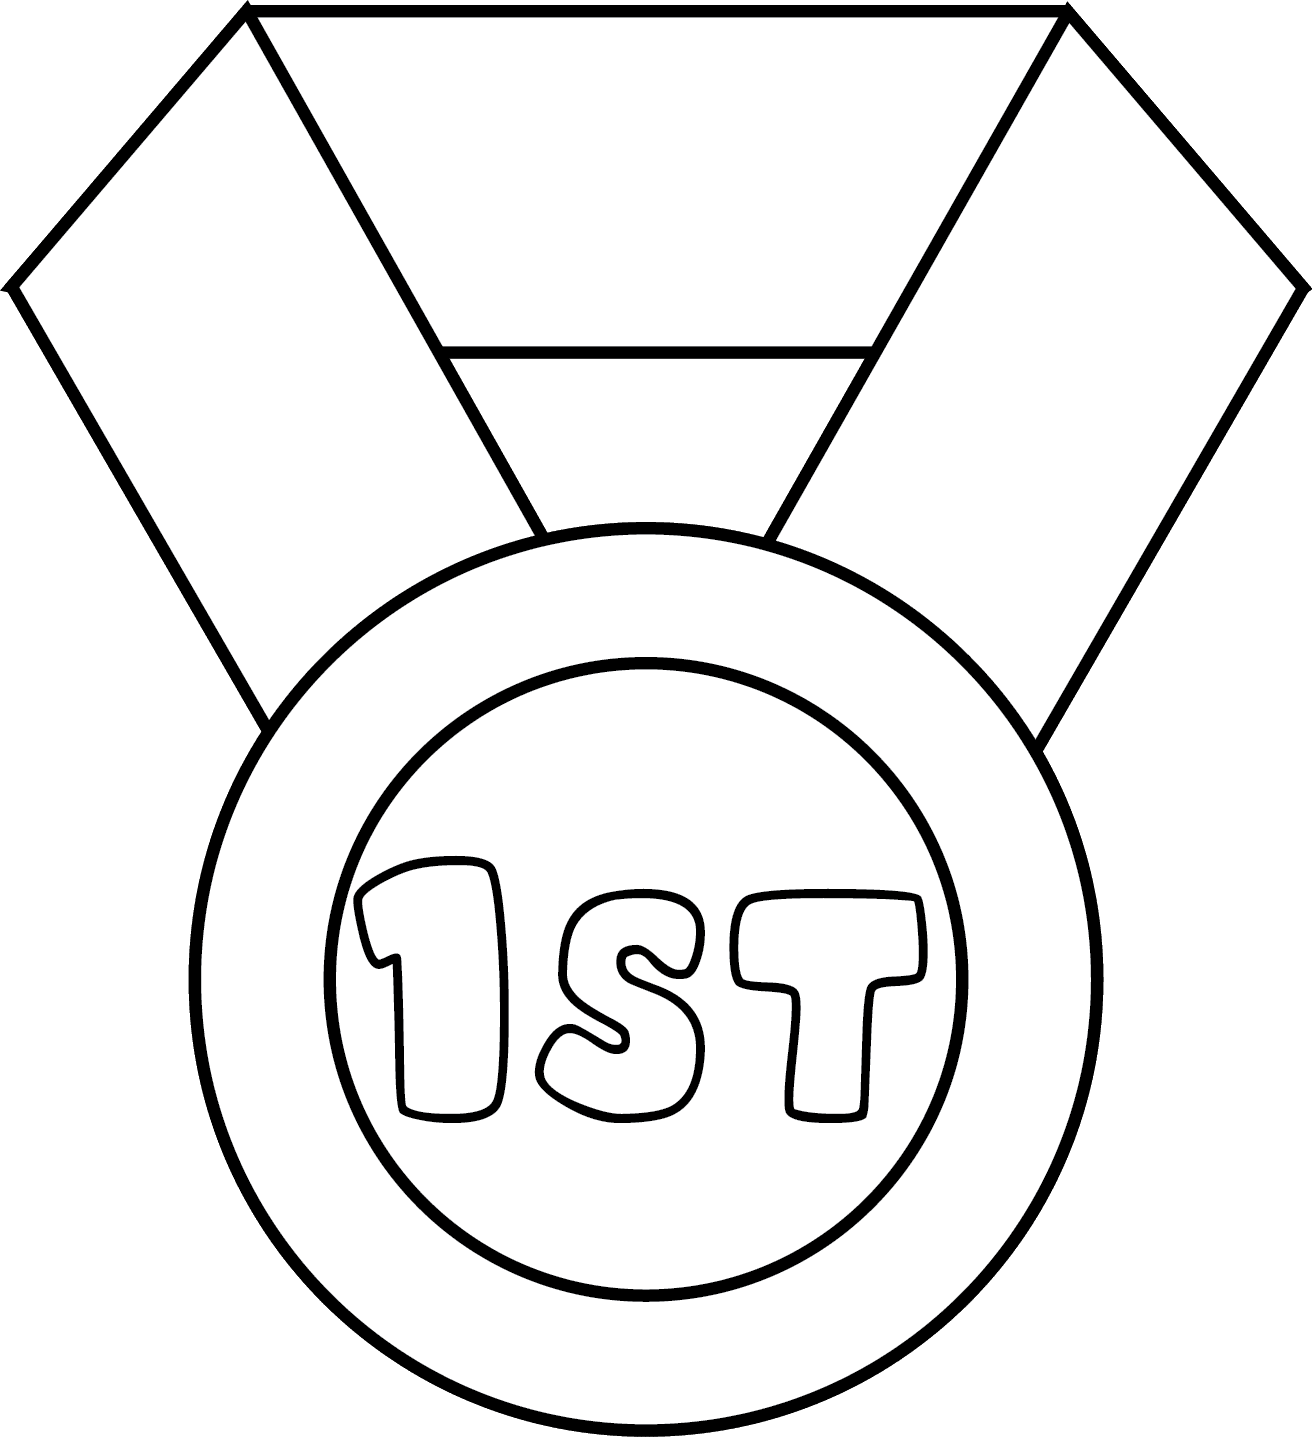 Medals drawing first place medal. Digital stamps of for